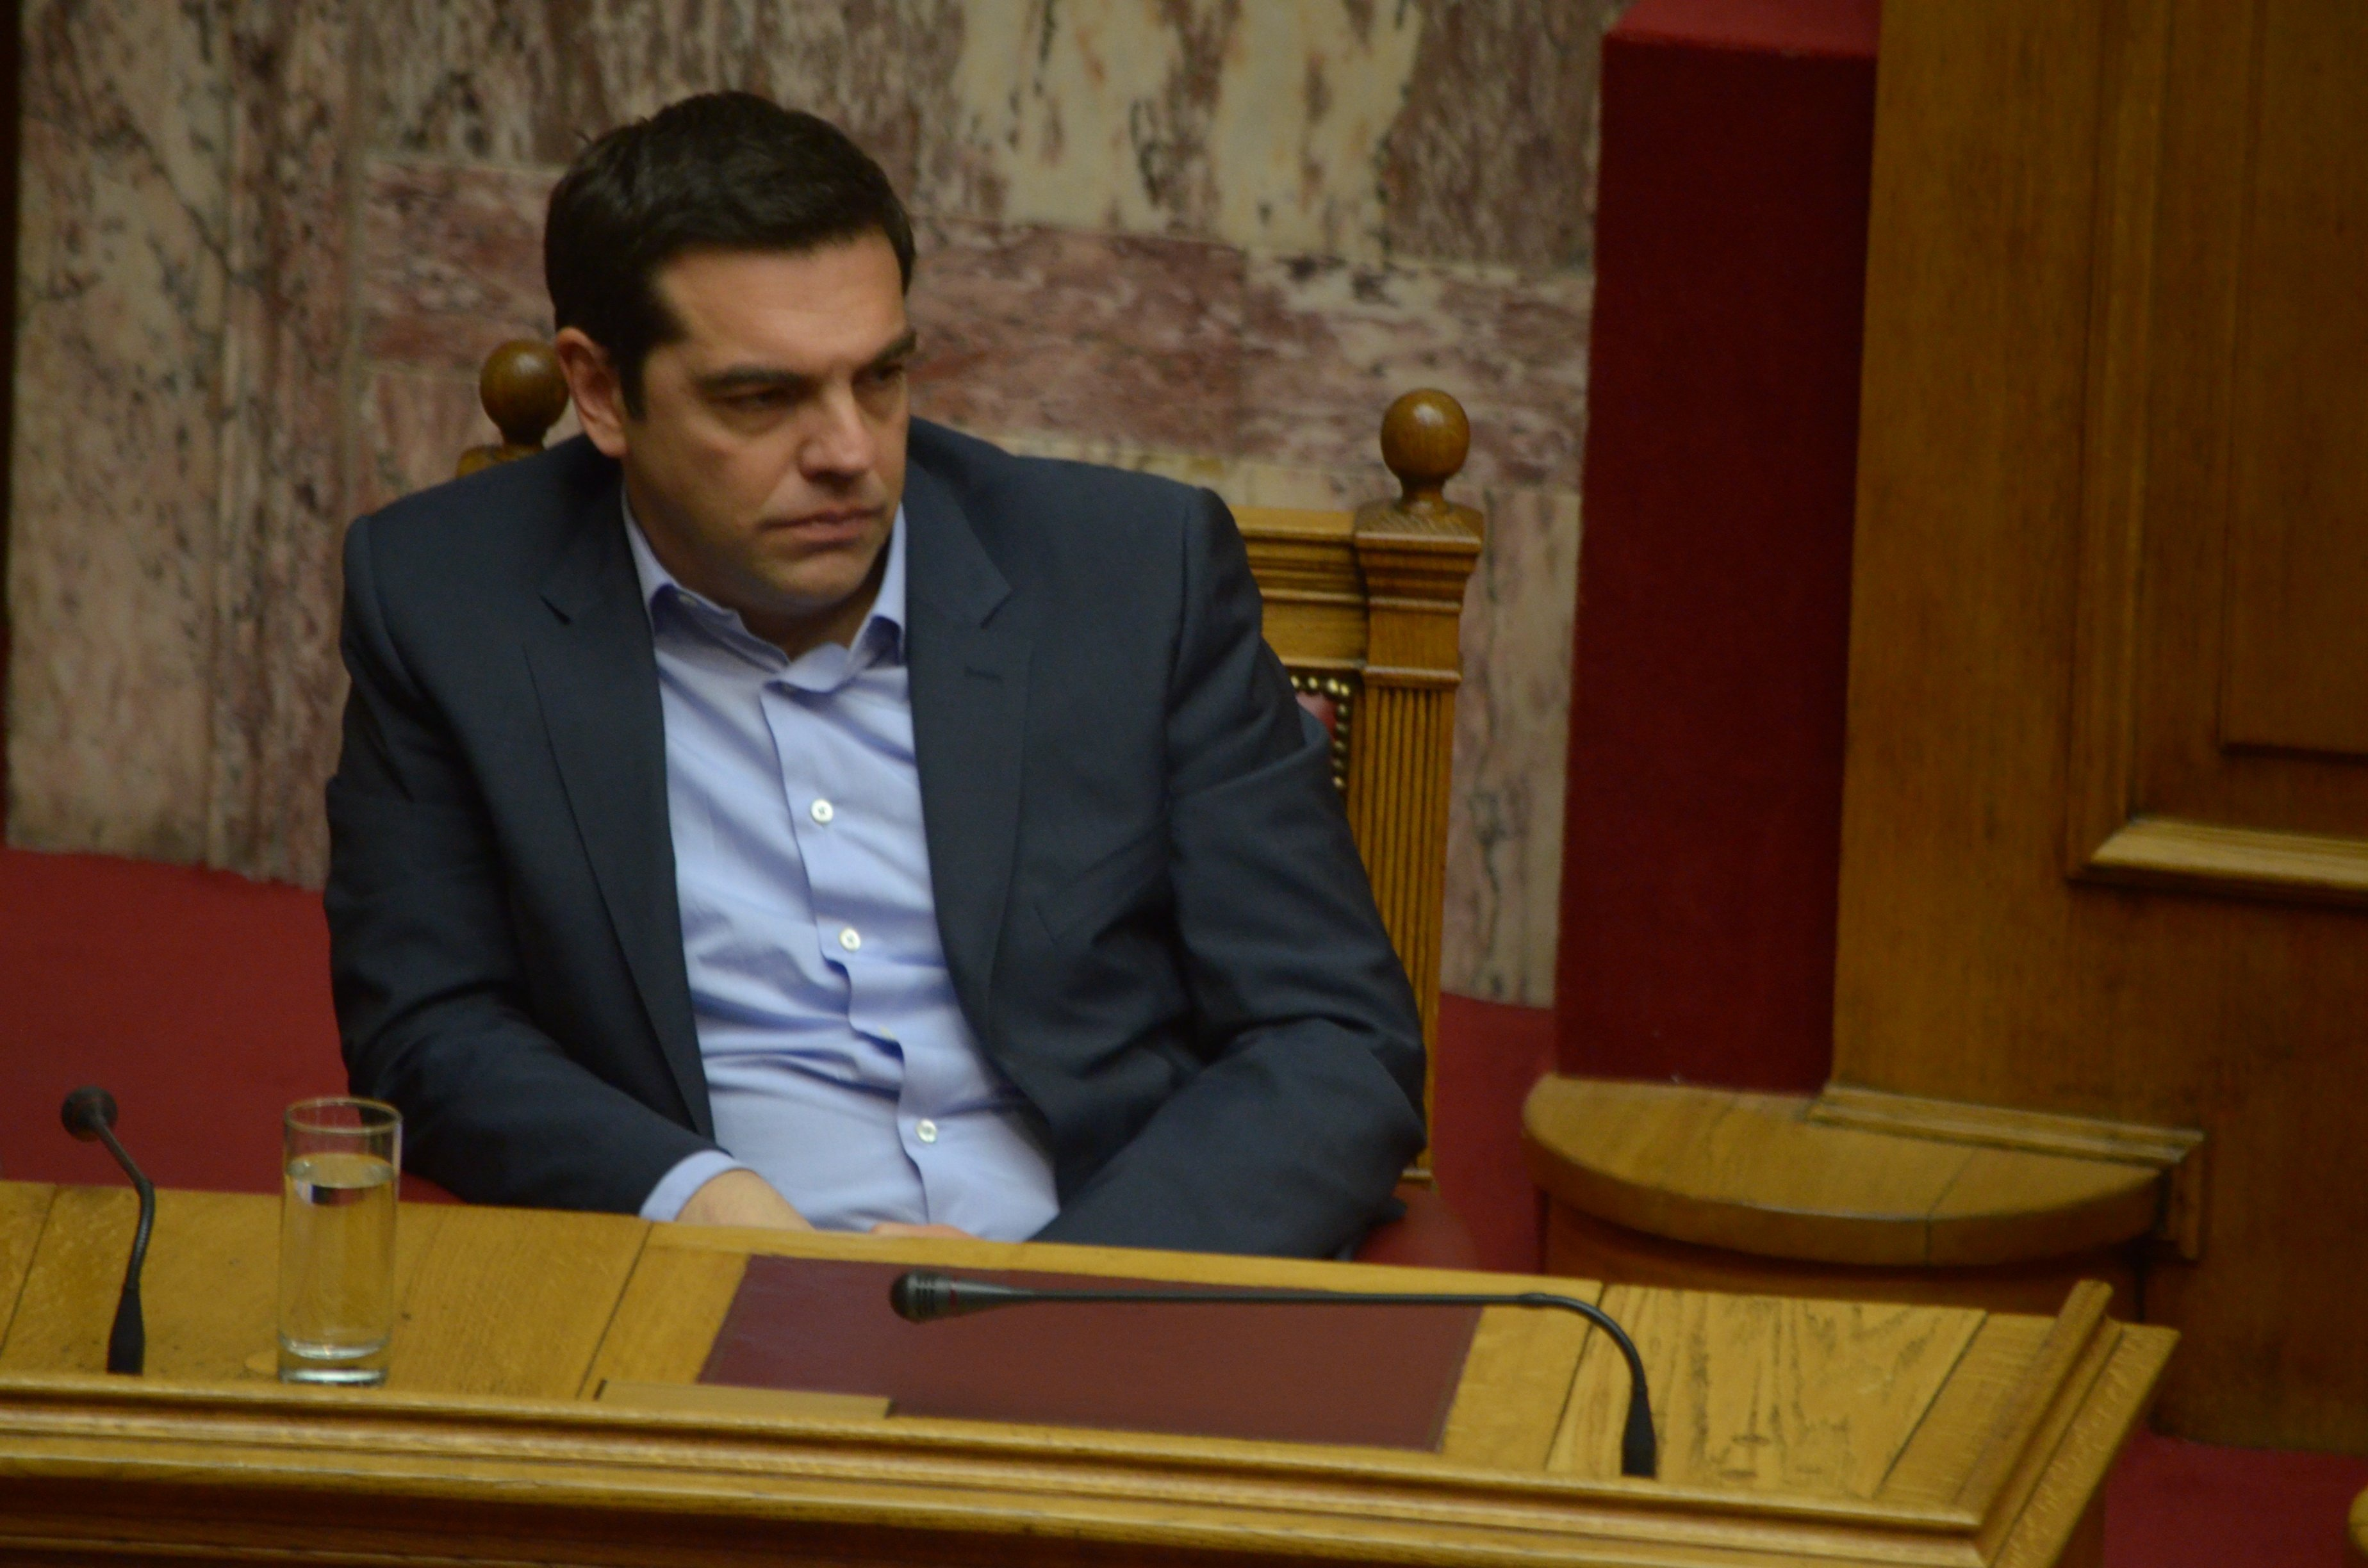 Prime Minister of Greece Aexis Tsipras sits in the Greek